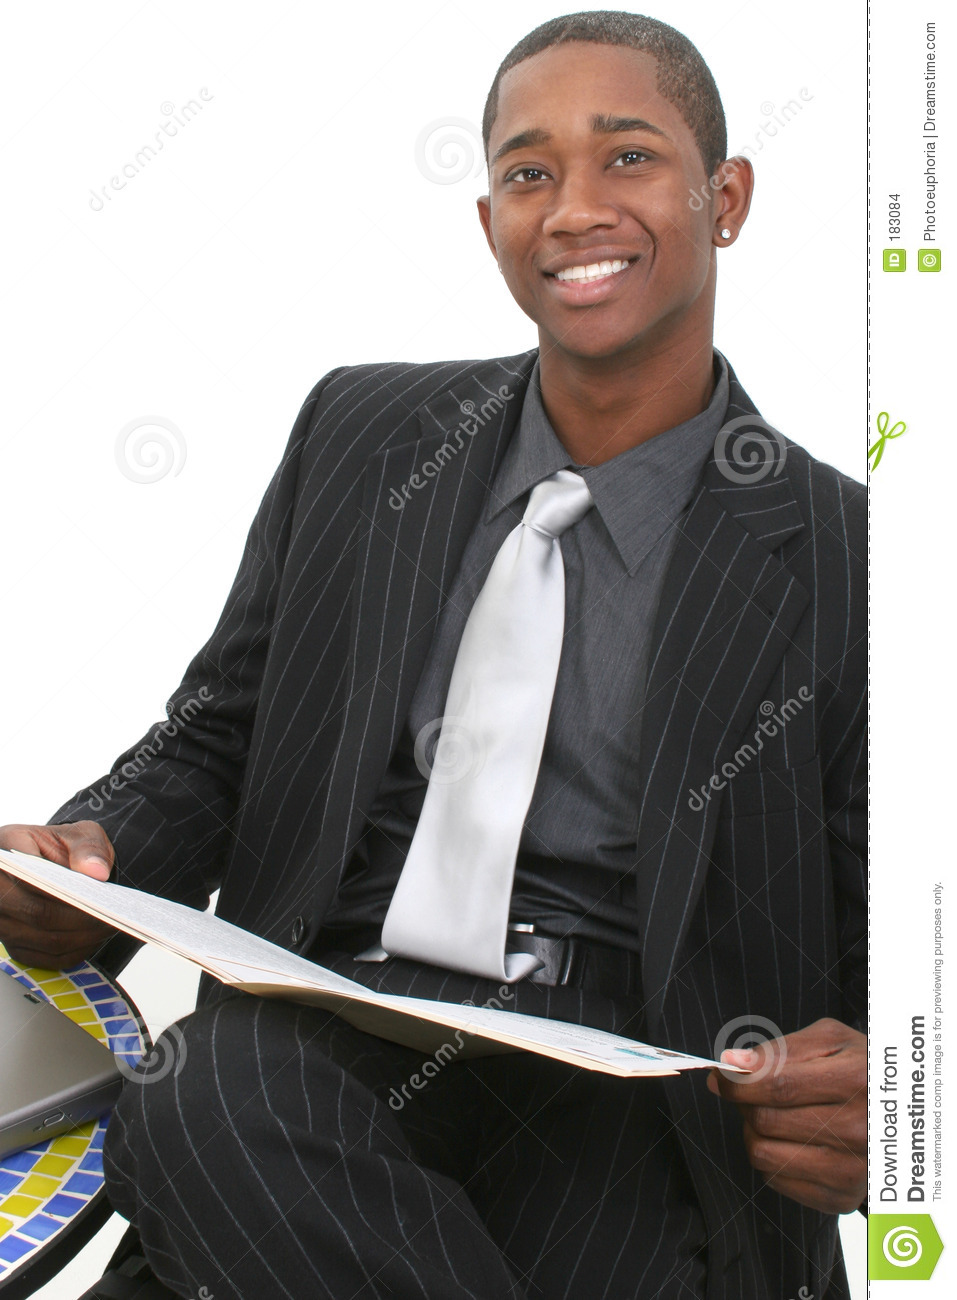 Attractive Business Man In Suit With File Folder And Big Smile